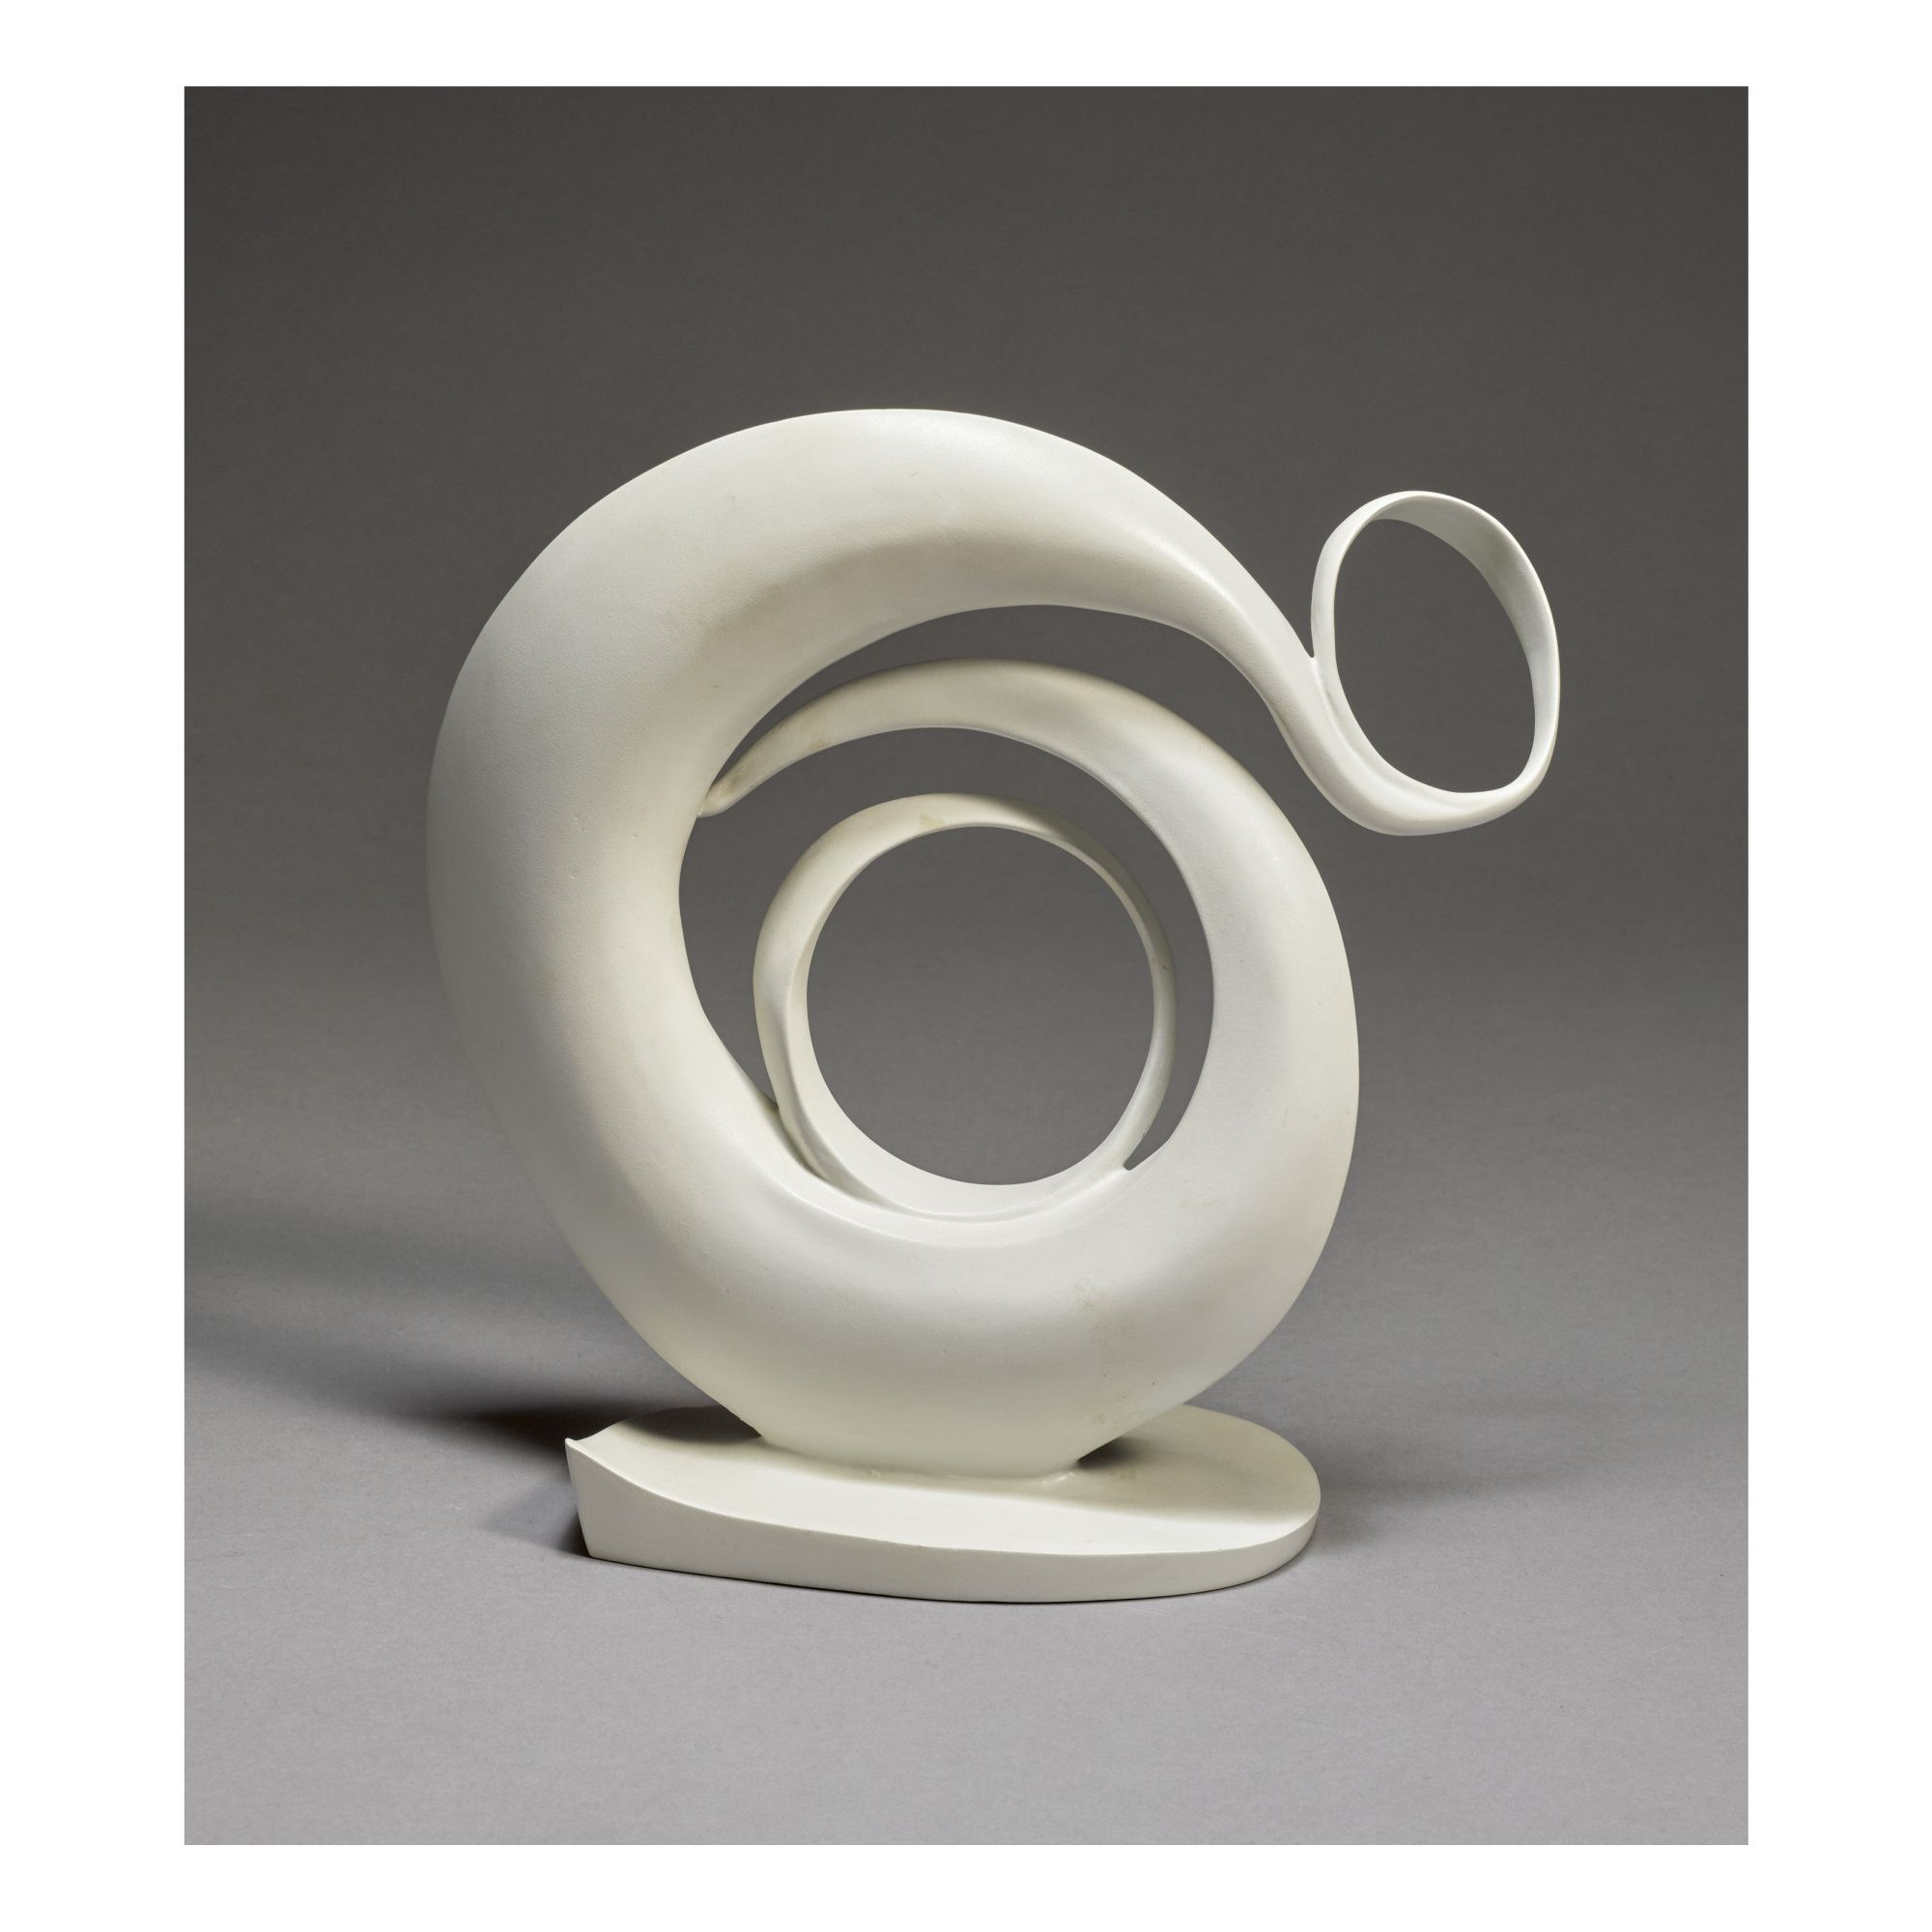 Georgia O'Keeffe's Rare Pottery Works Are Hitting The Auction Block